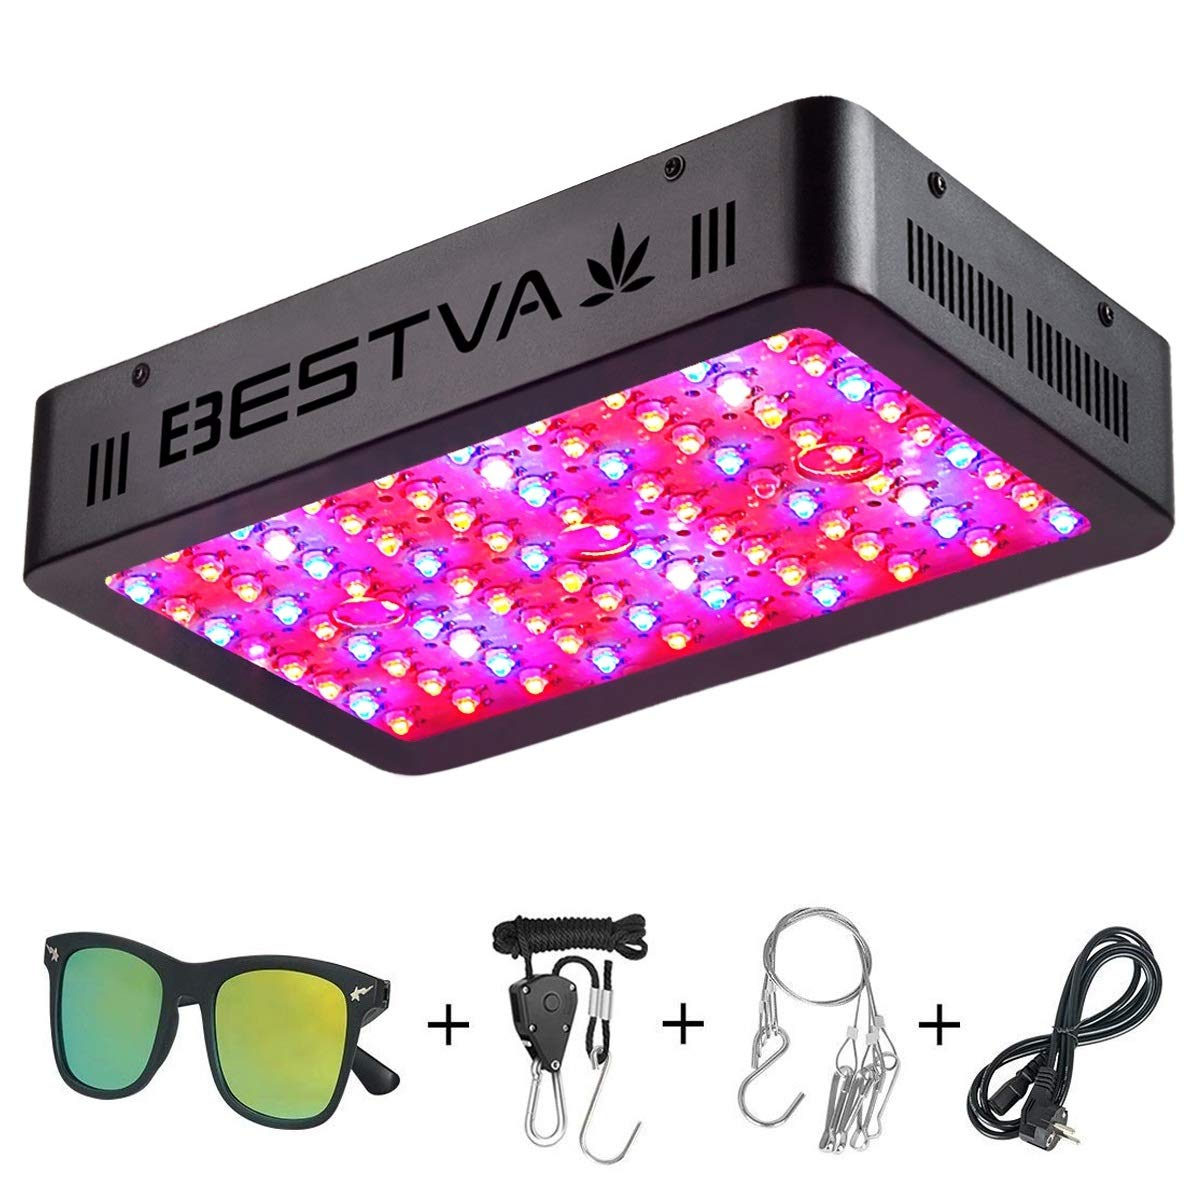 ESTVA 1000w LED grow light